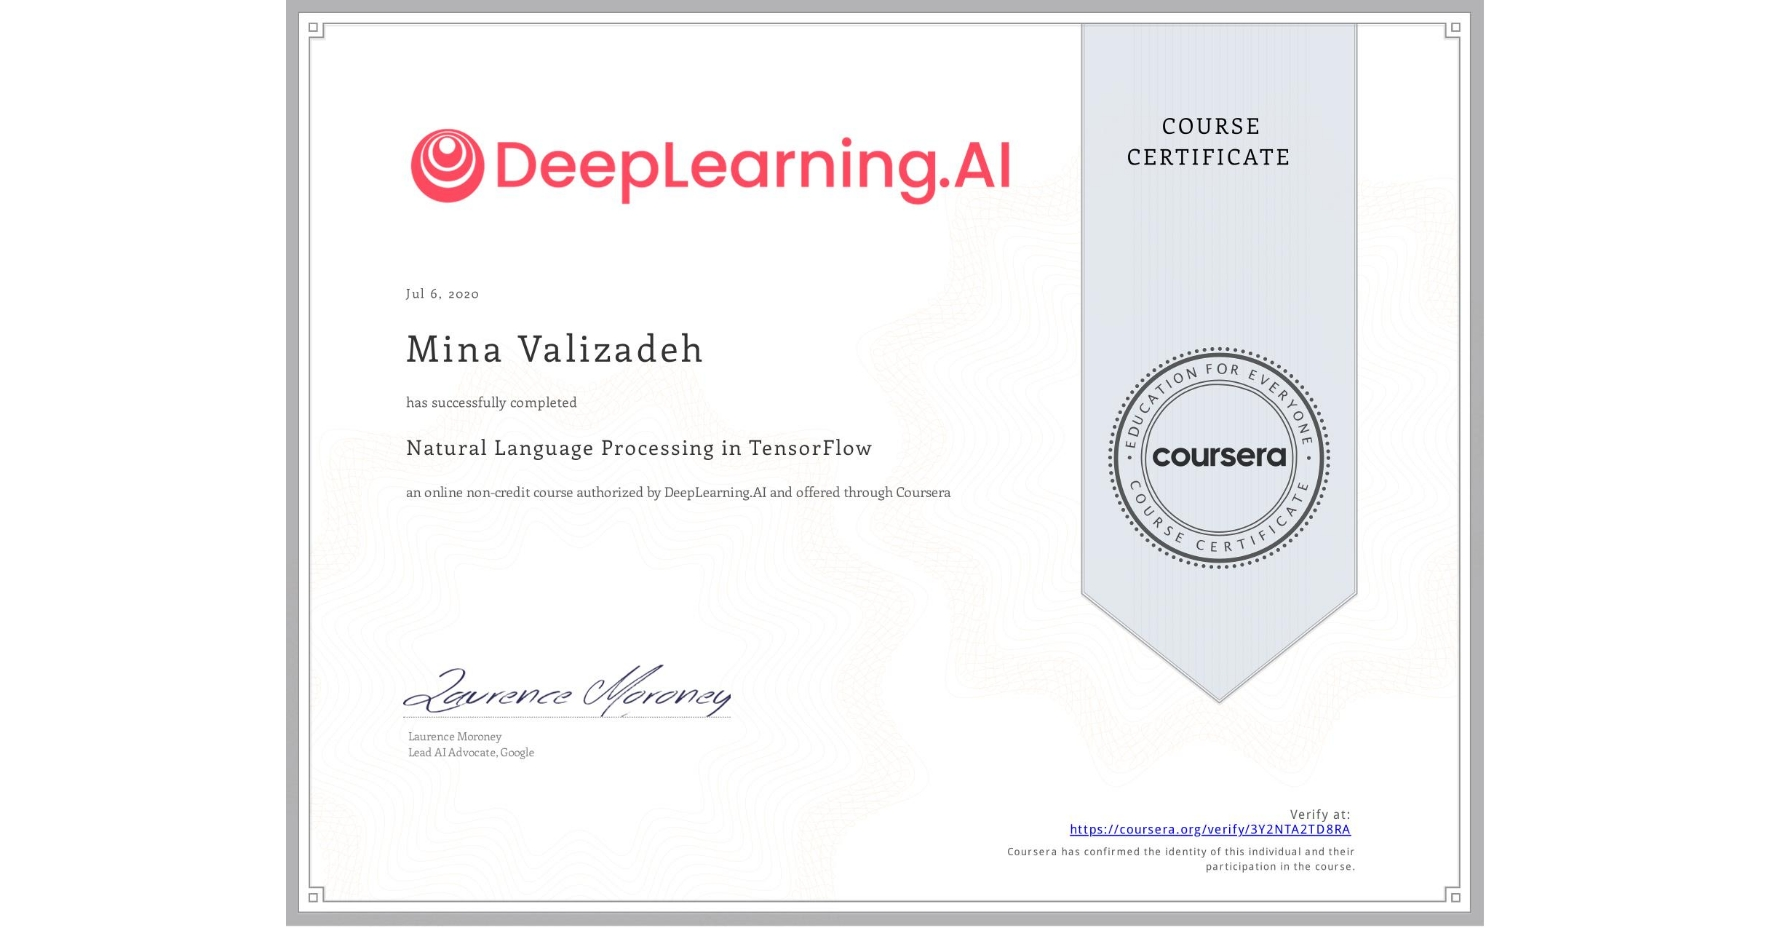 View certificate for Mina Valizadeh, Natural Language Processing in TensorFlow, an online non-credit course authorized by DeepLearning.AI and offered through Coursera